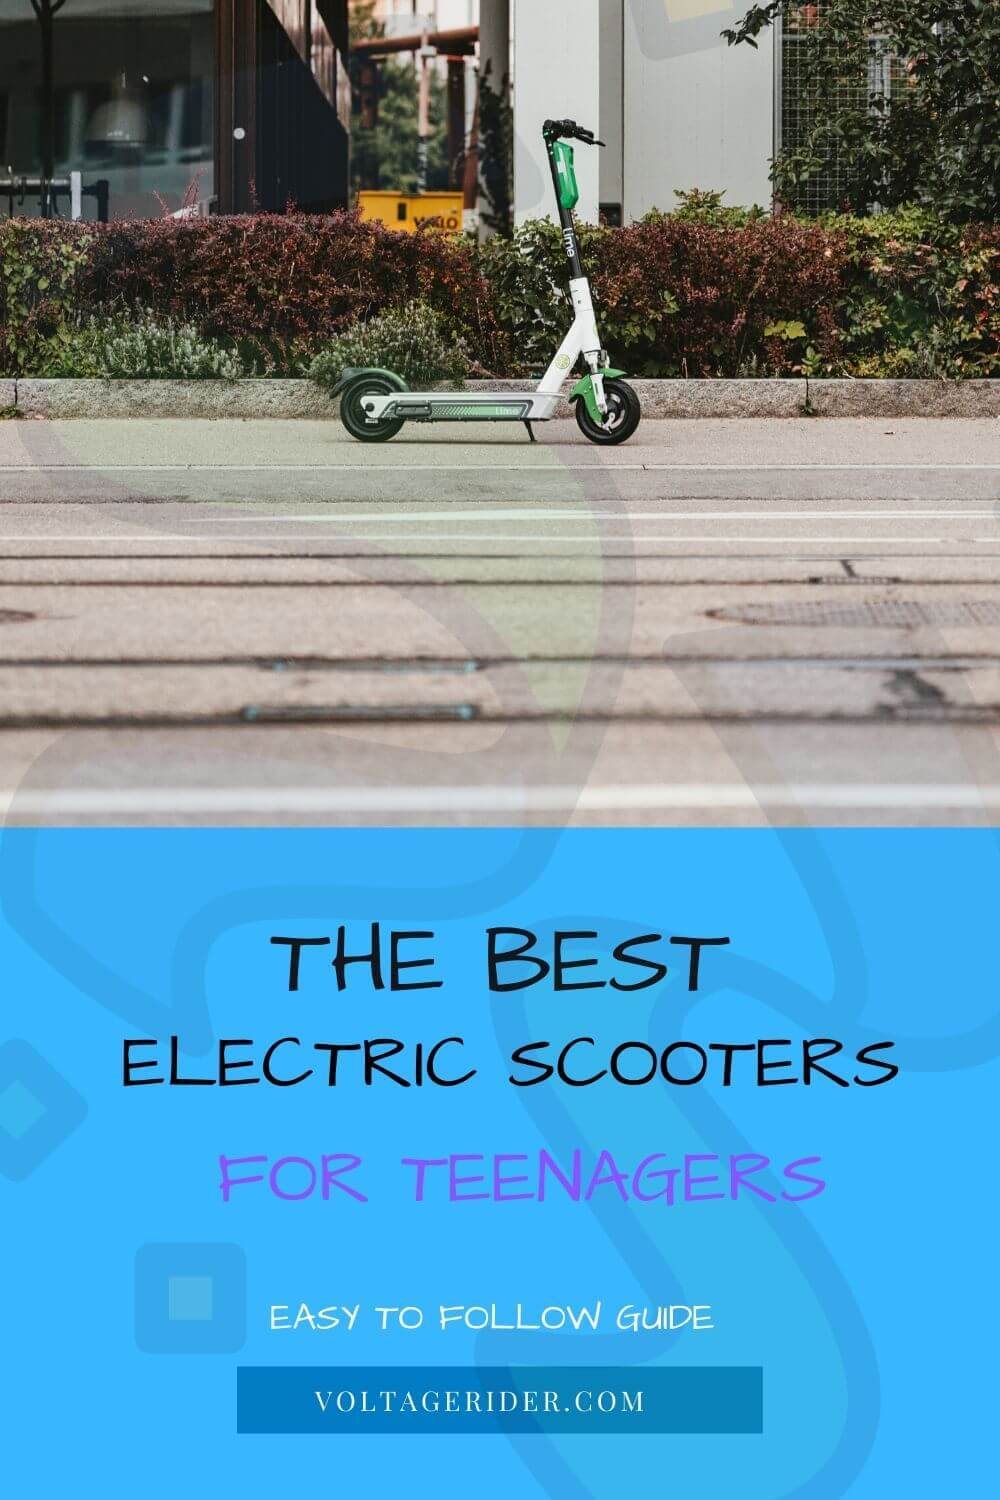 There is a renting electric scooter - image pinterest voltage rider